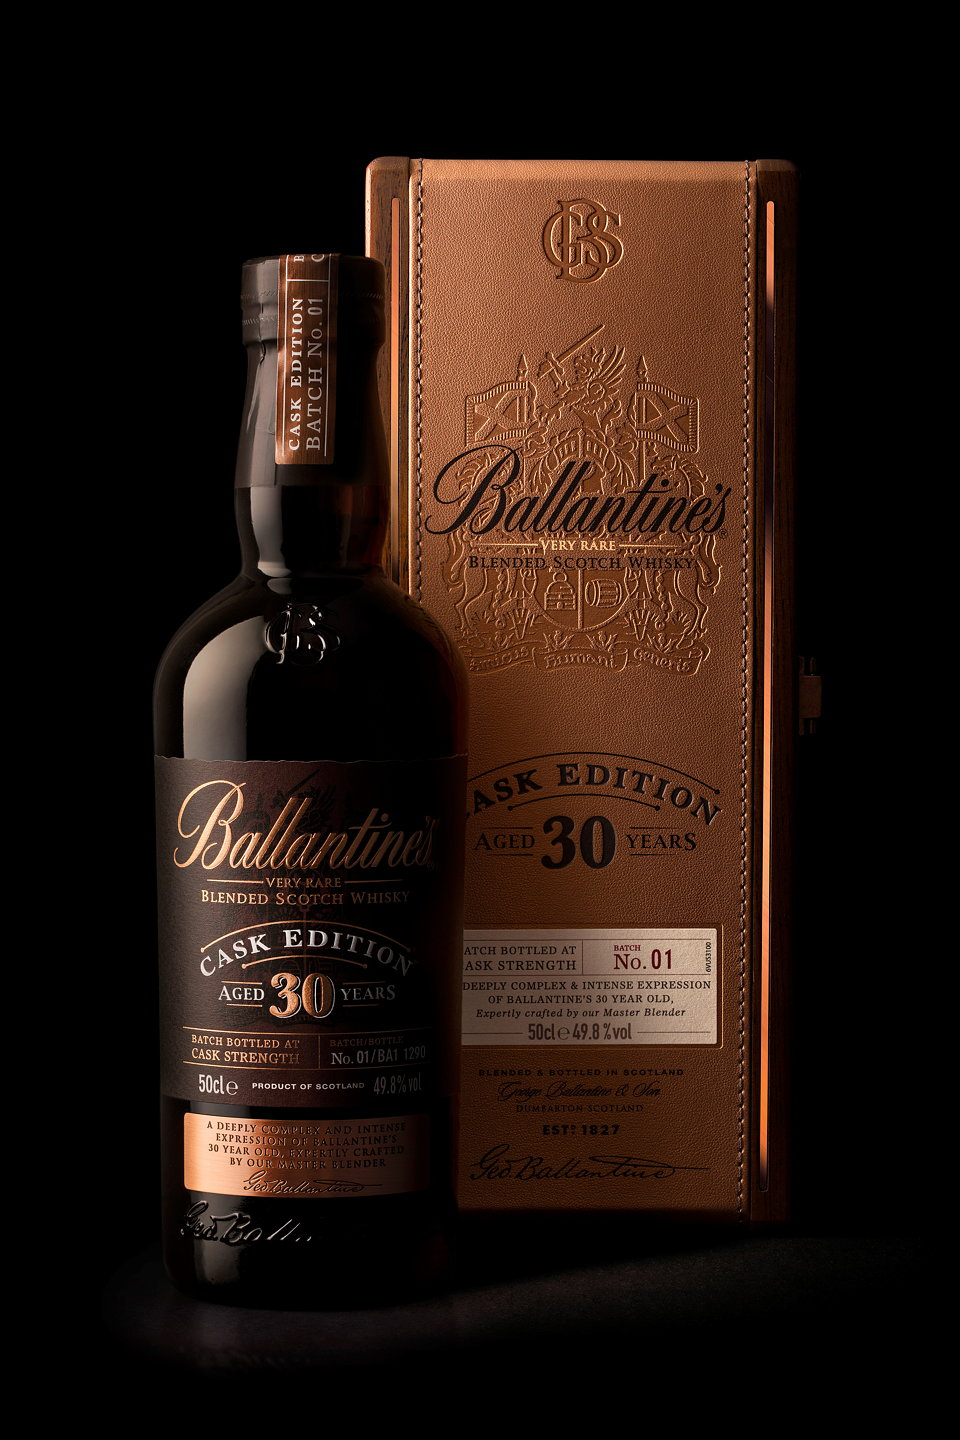 Ballantine's 30 Year Old Cask Edition is a blend of Ballantine's rarest whiskies